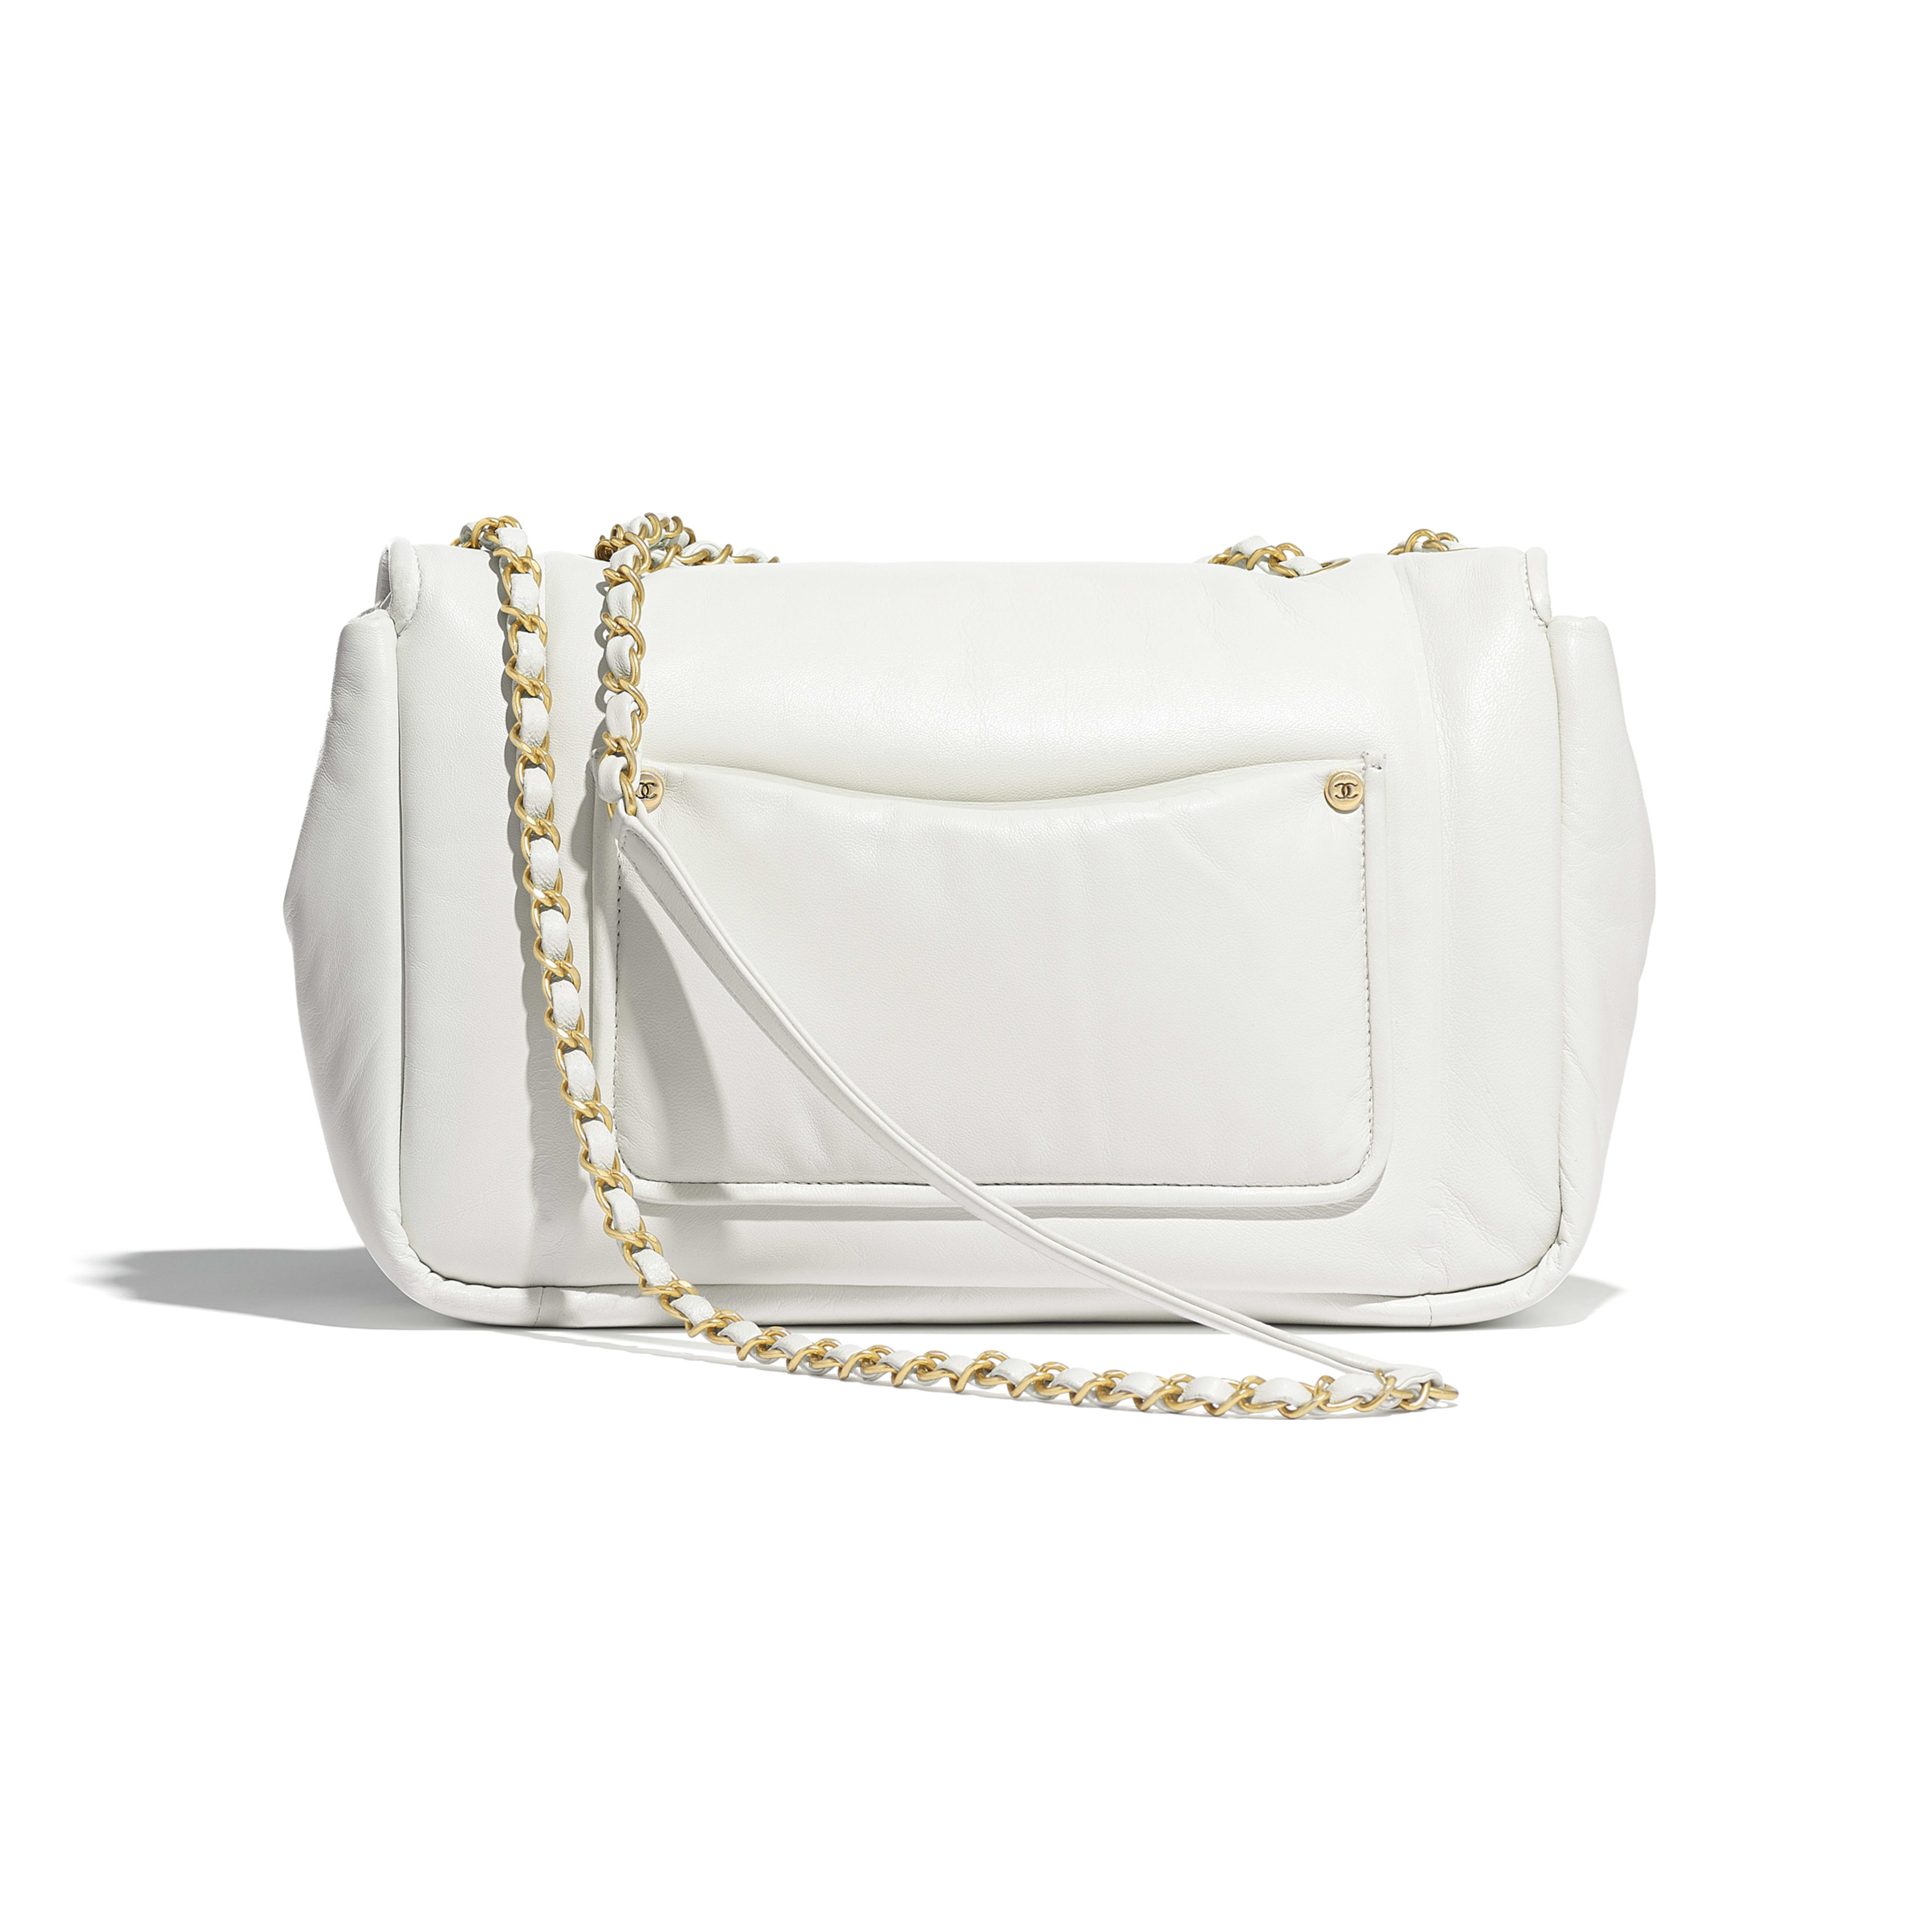 Flap Bag - White - Lambskin & Gold-Tone Metal - Alternative view - see full sized version